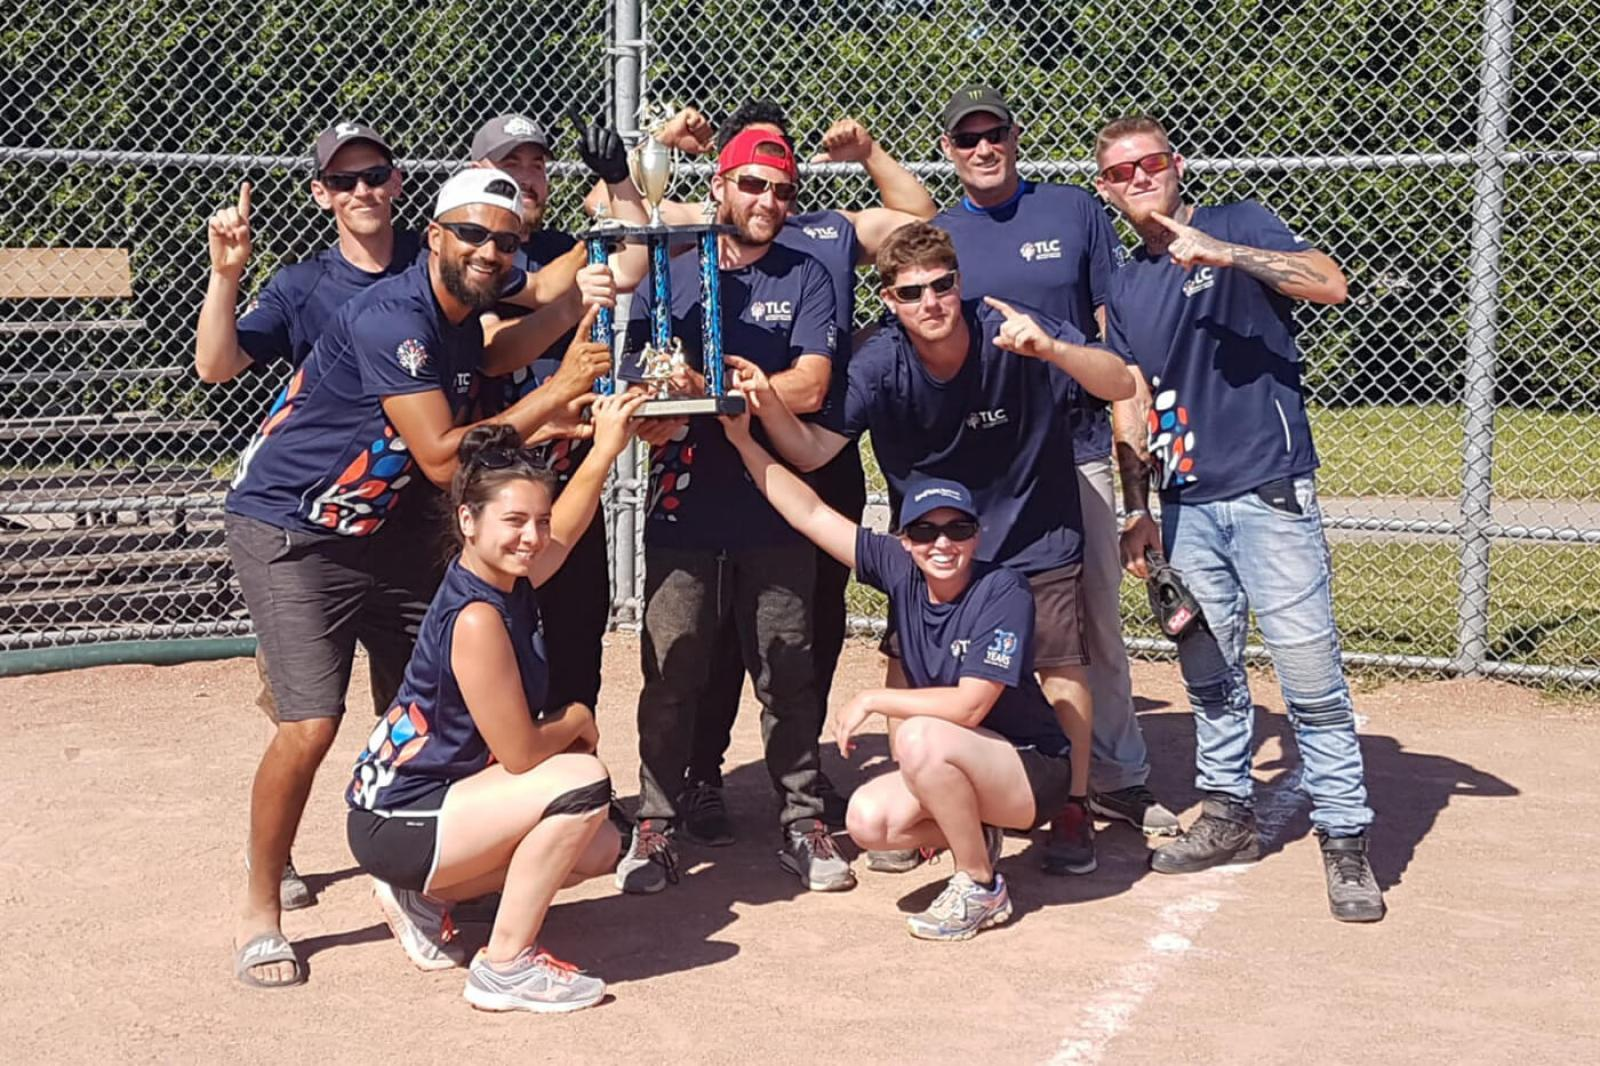 TLC Landscaping wins first ever London Chapter baseball tournament